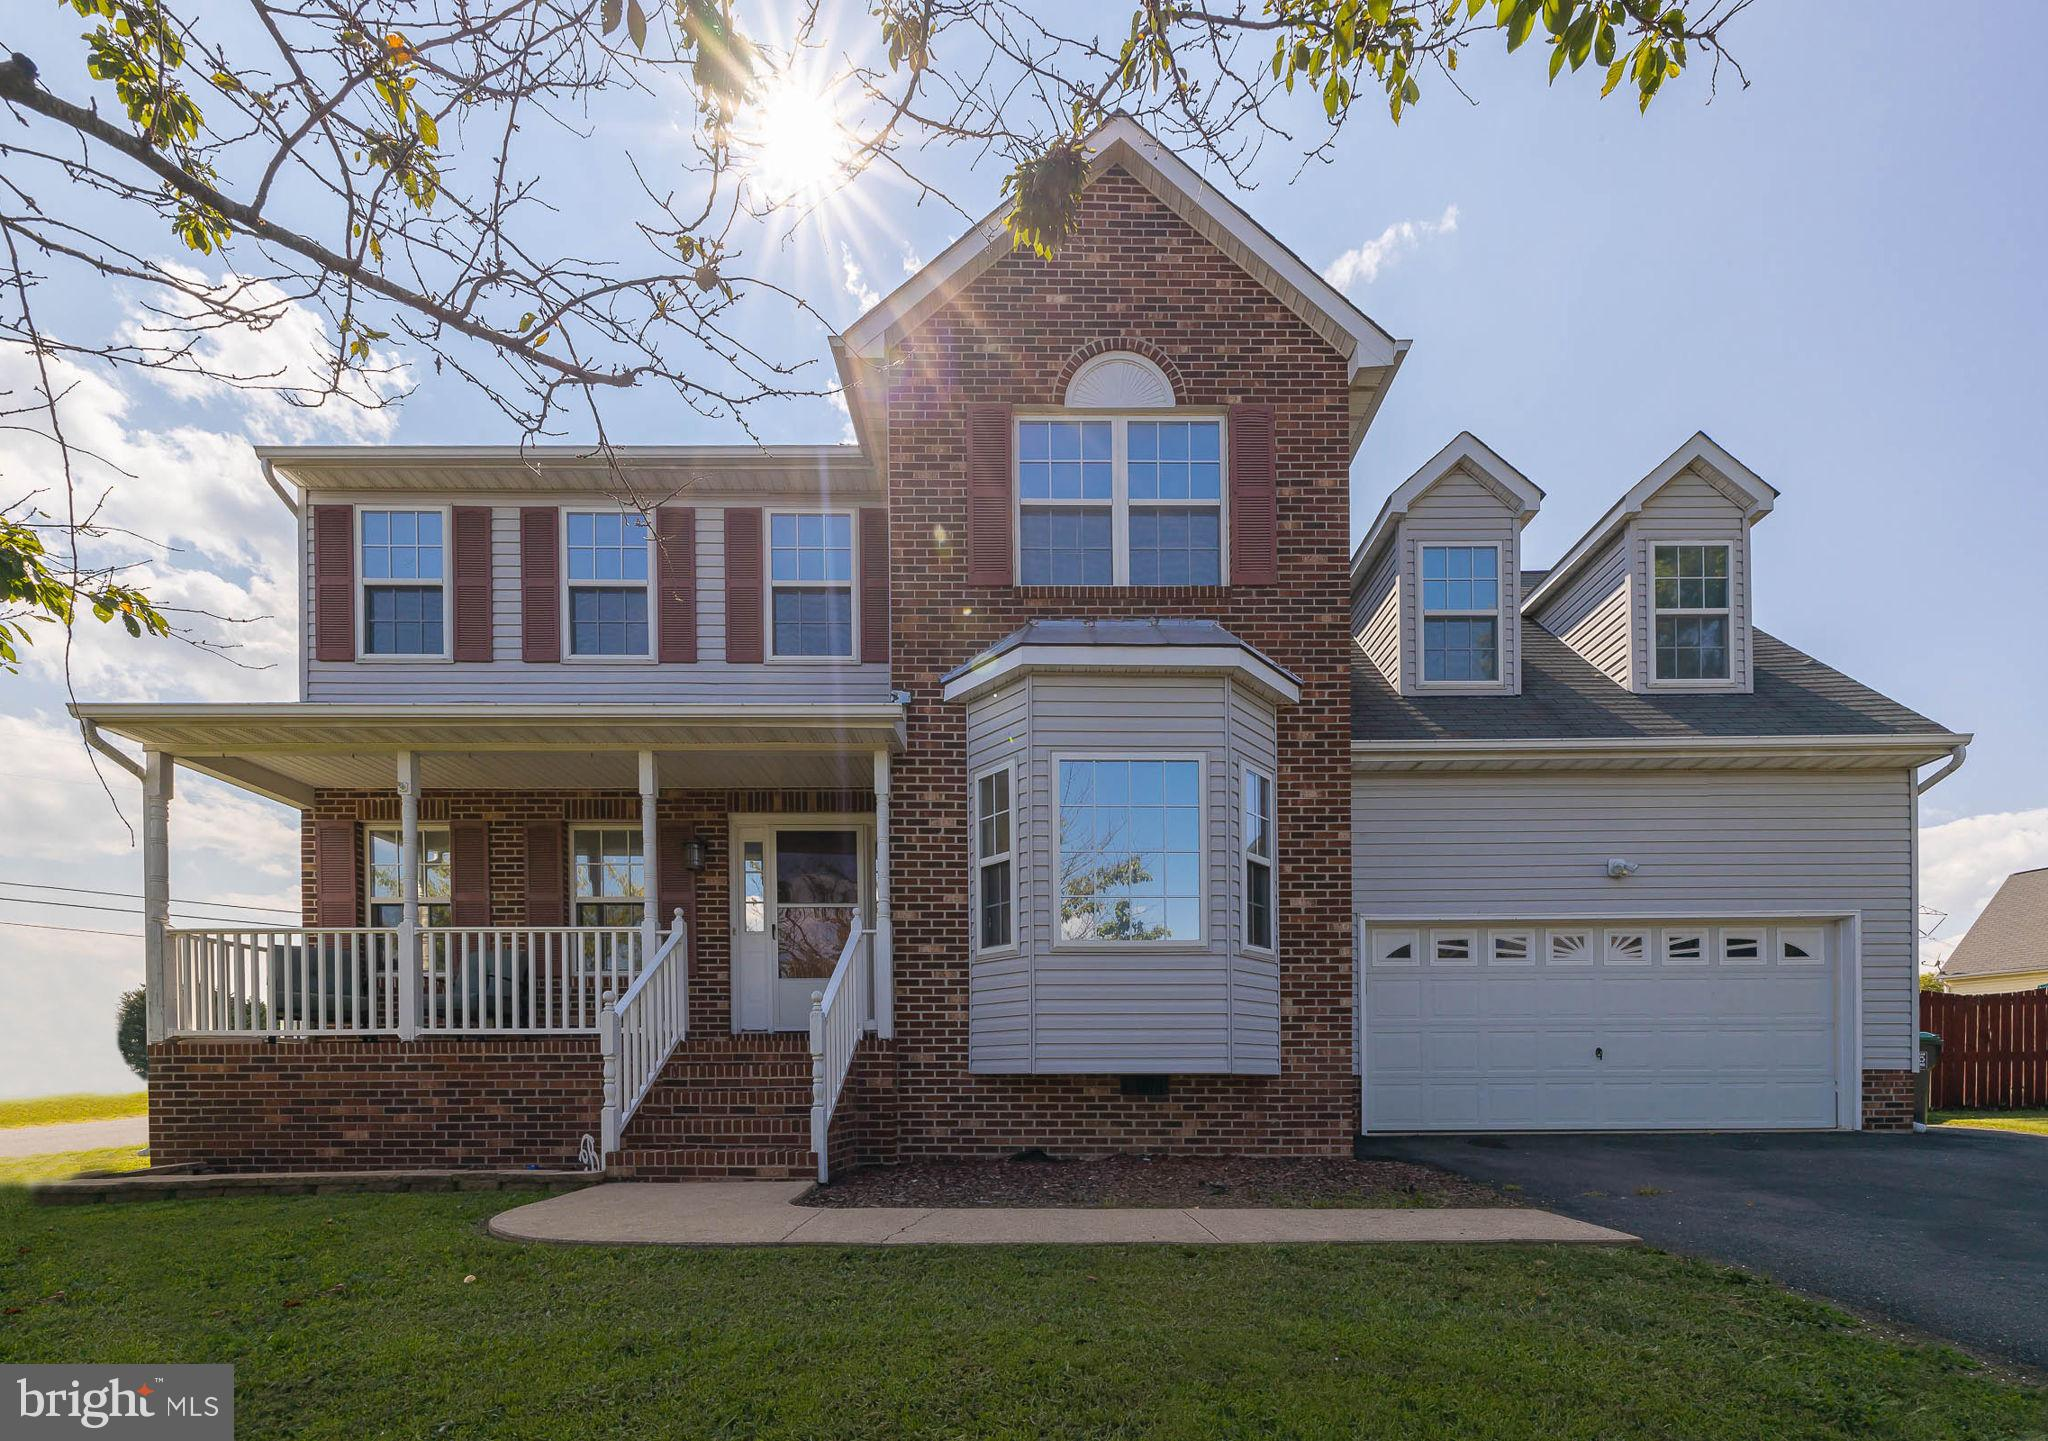 LOCATION LOCATION LOCATION! Riverbend School District! Corner lot in Ashleigh Park , updated kitchen with new cabinets, granite counter tops and stainless appliances. New washer and dryer. Fenced in backyard with deck.